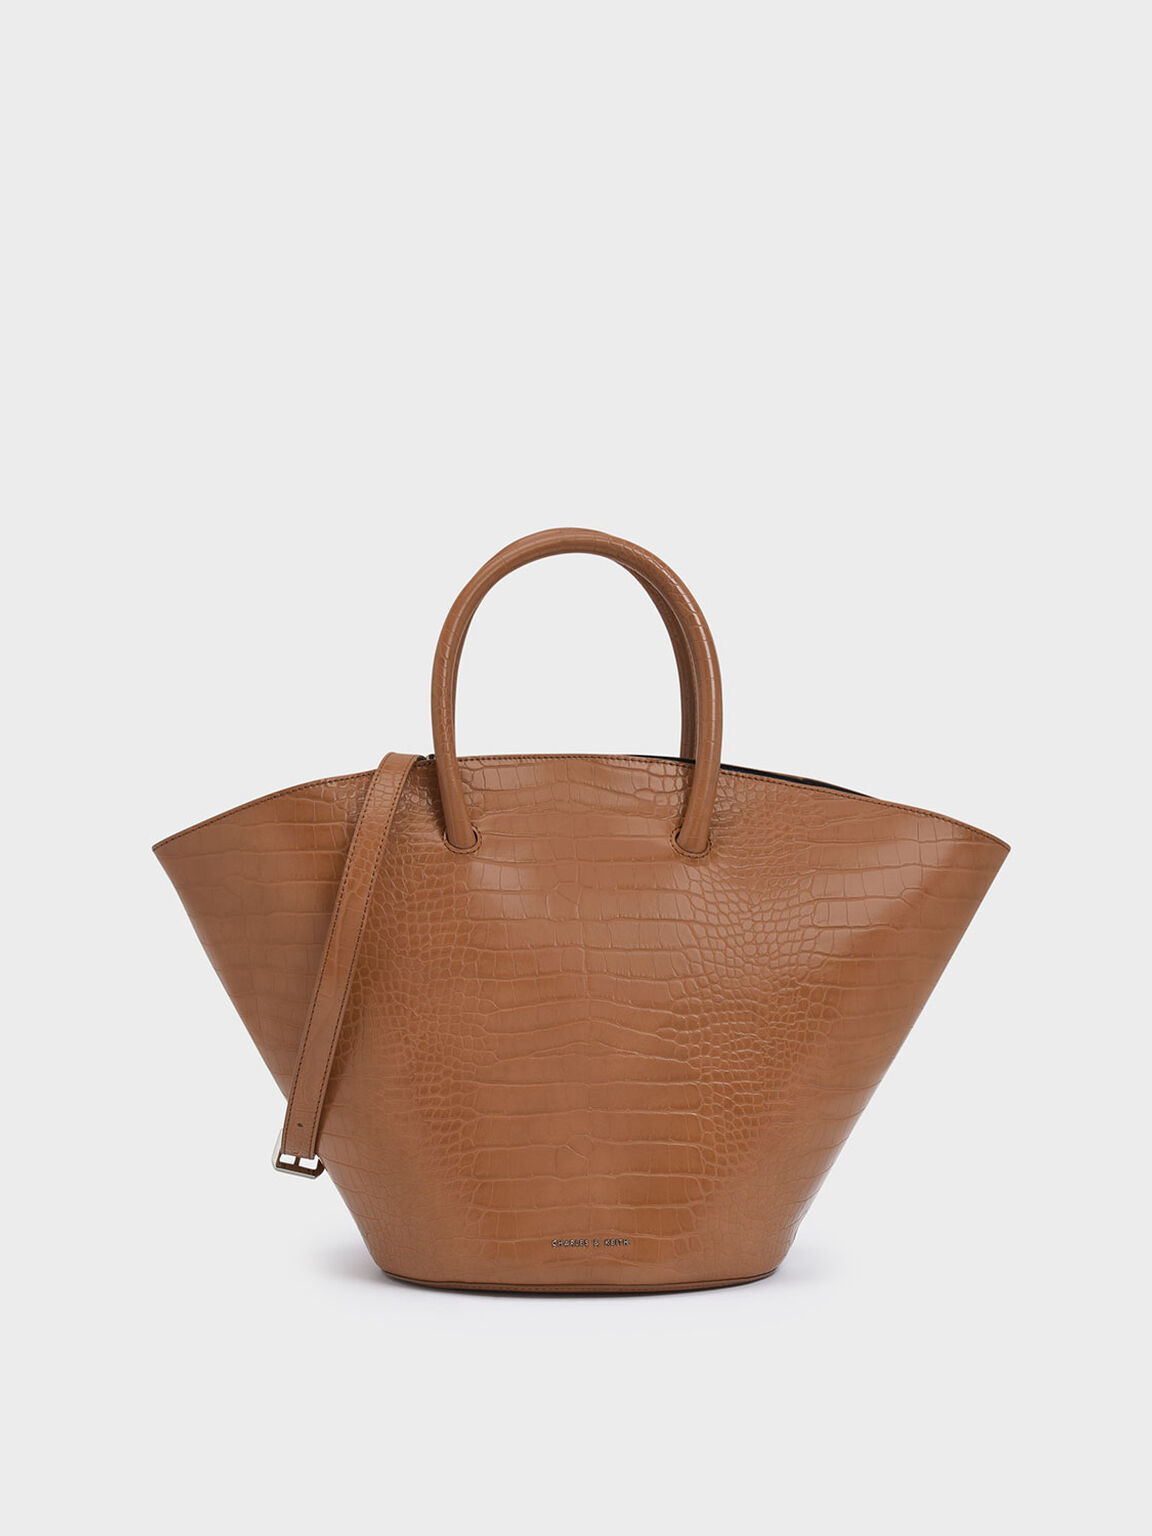 Croc-Effect Large Trapeze Tote, Tan, hi-res